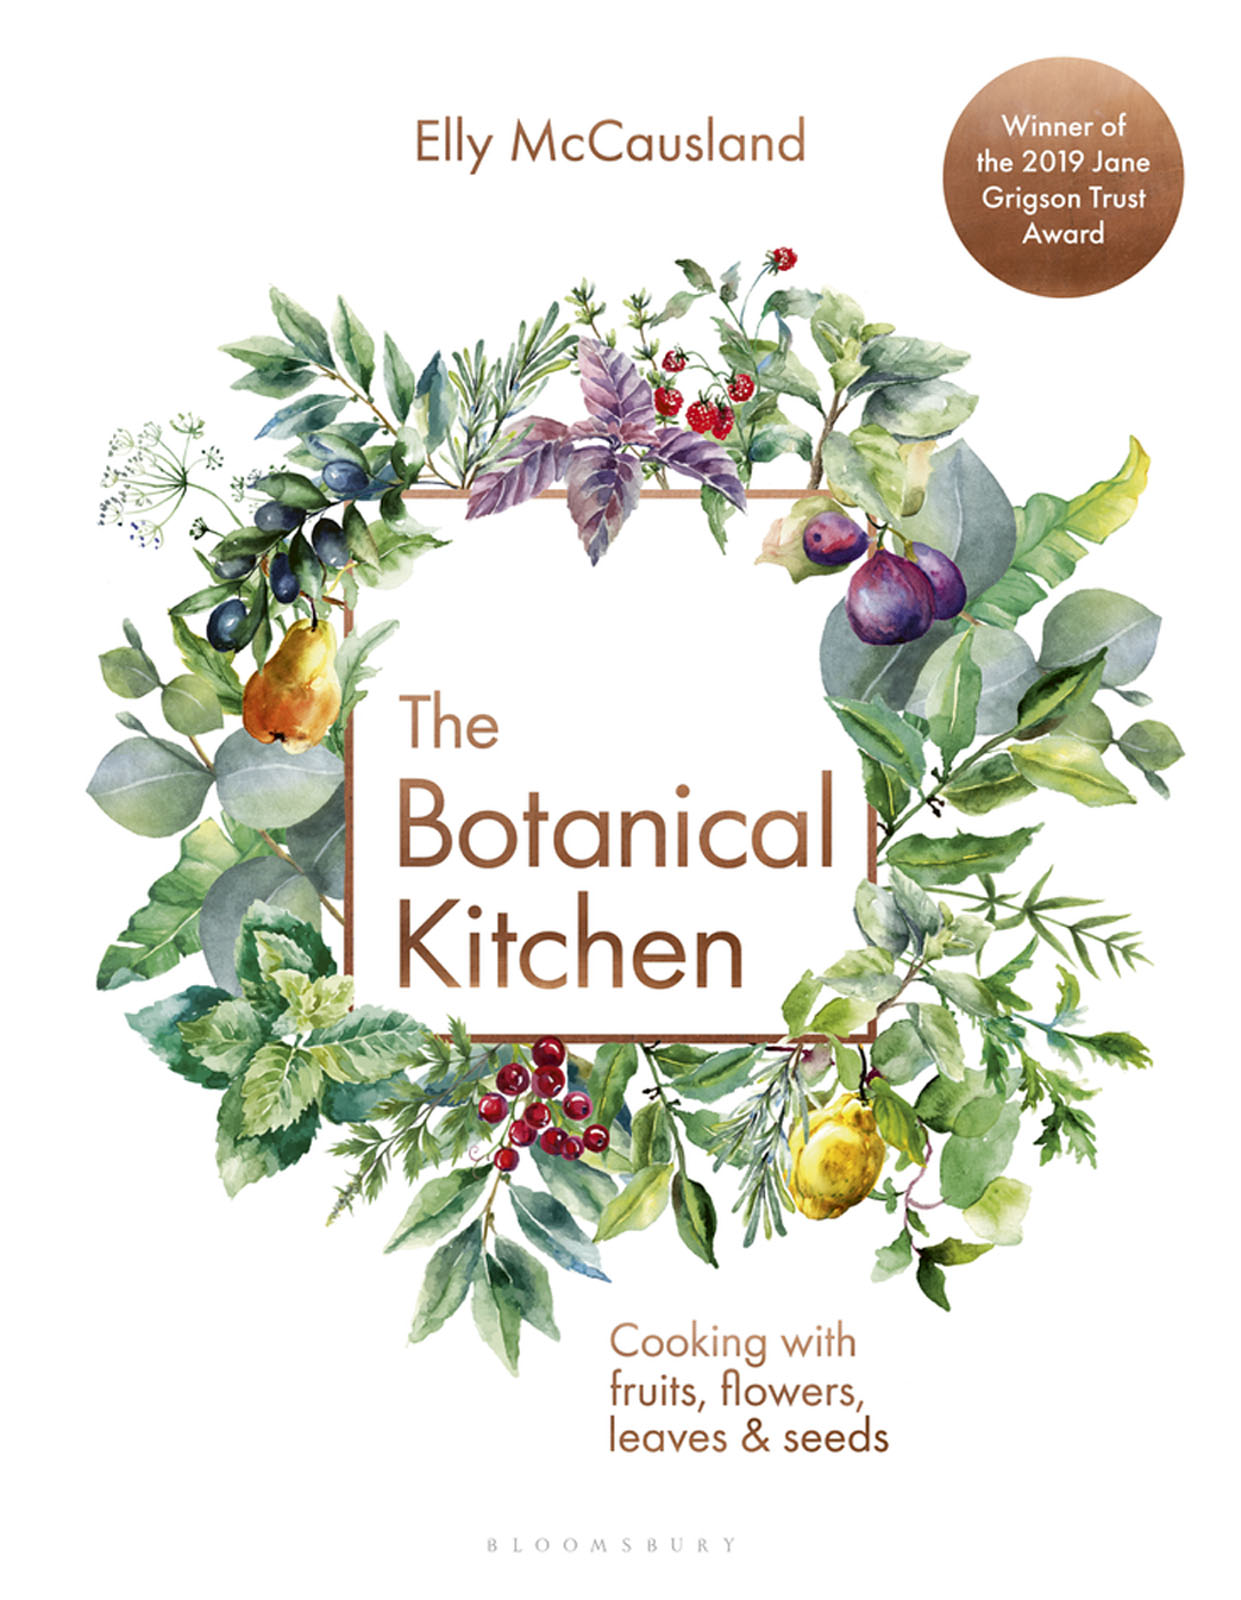 Elly McCausland's The Botanical Kitchen - book jacket